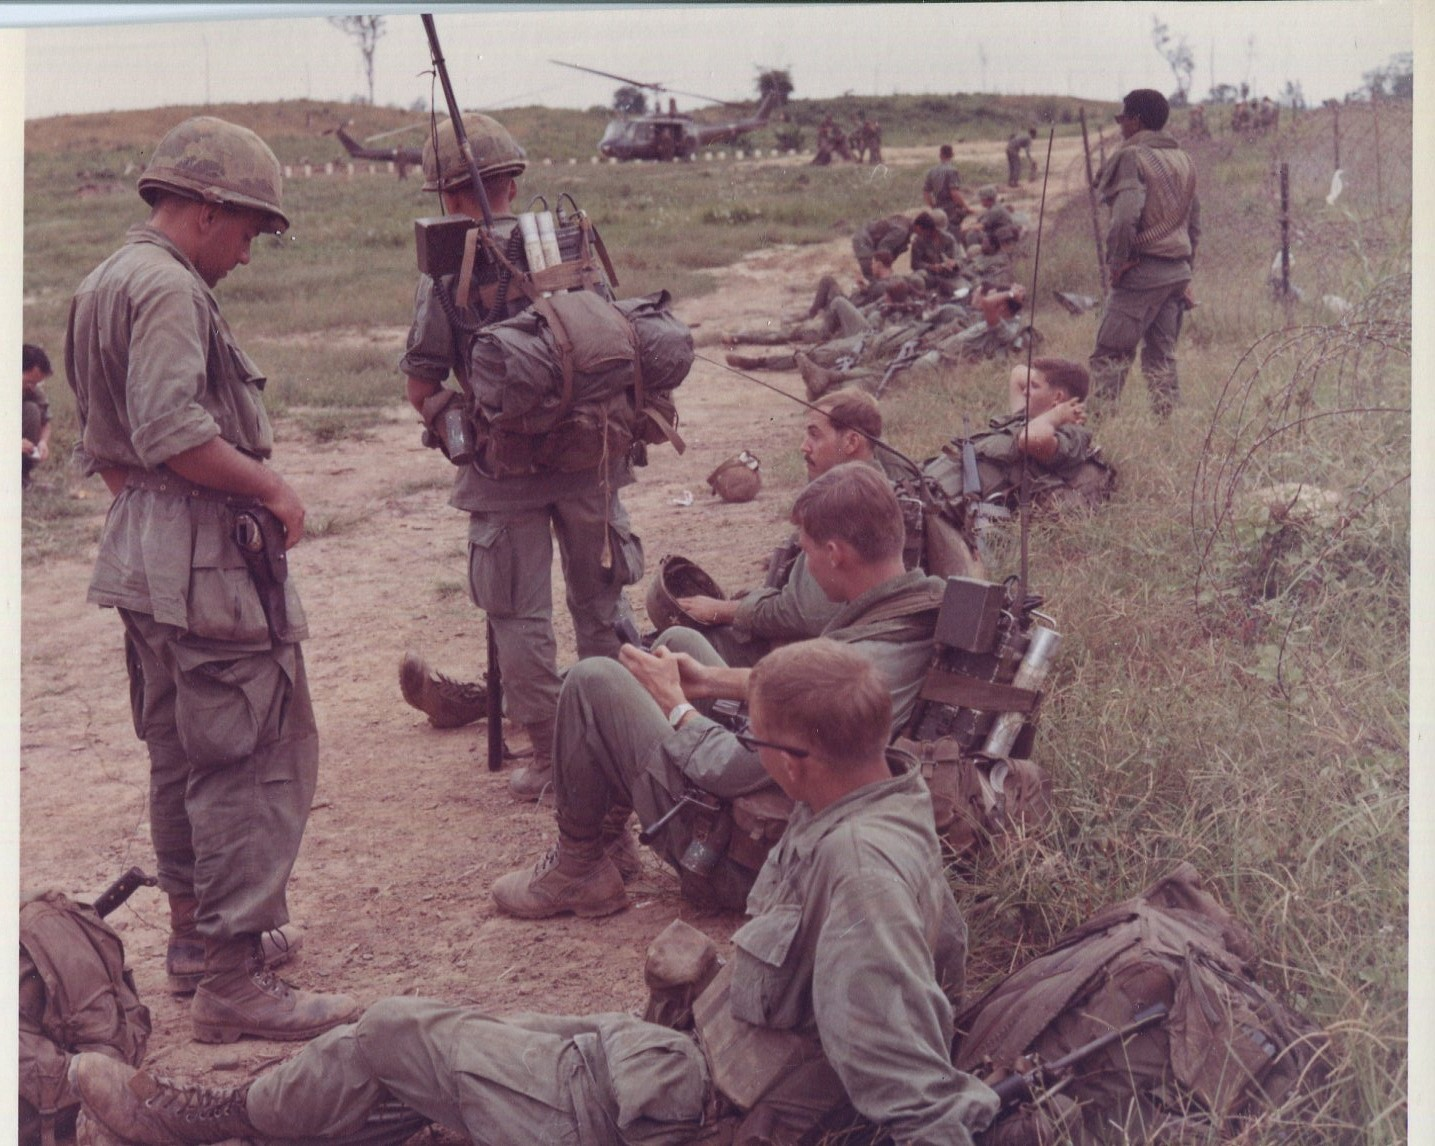 chain of command from infantry in vietnam to the president Assignment help  history  looking all the way up the chain of command from the infantry soldiers in vietnam to the president, write a short paper that will correlate the understanding of roe with the limited war ideology and its assumptions as seen through the perspective and experiences of the six levels.